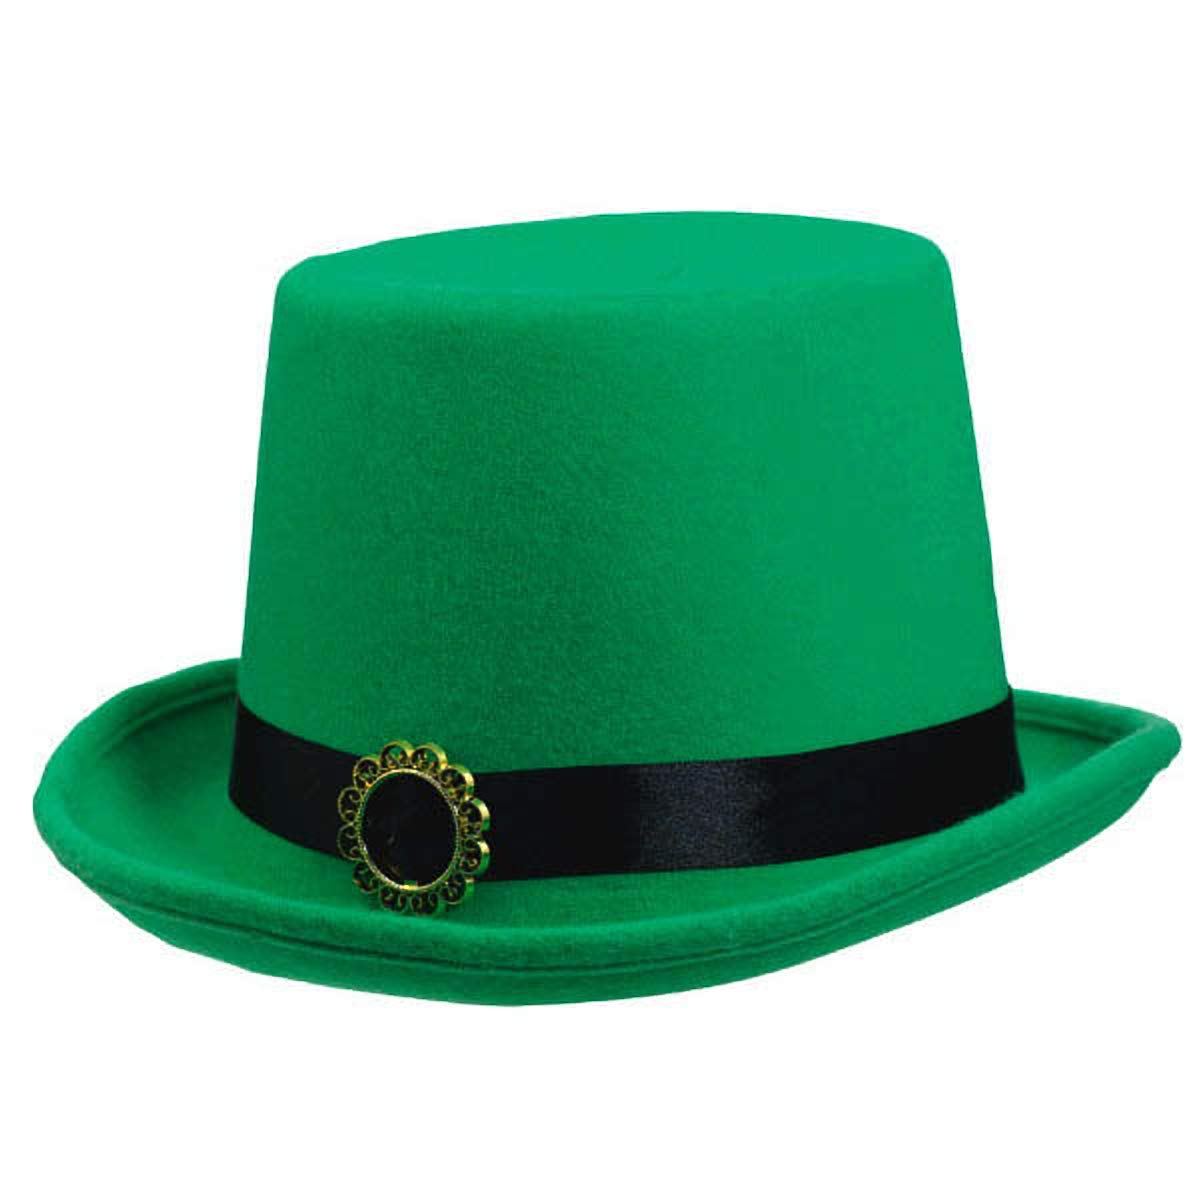 Patricks Day Green Fabric Top Hat Party Accessory I 6 Ct Amscan 255875 St